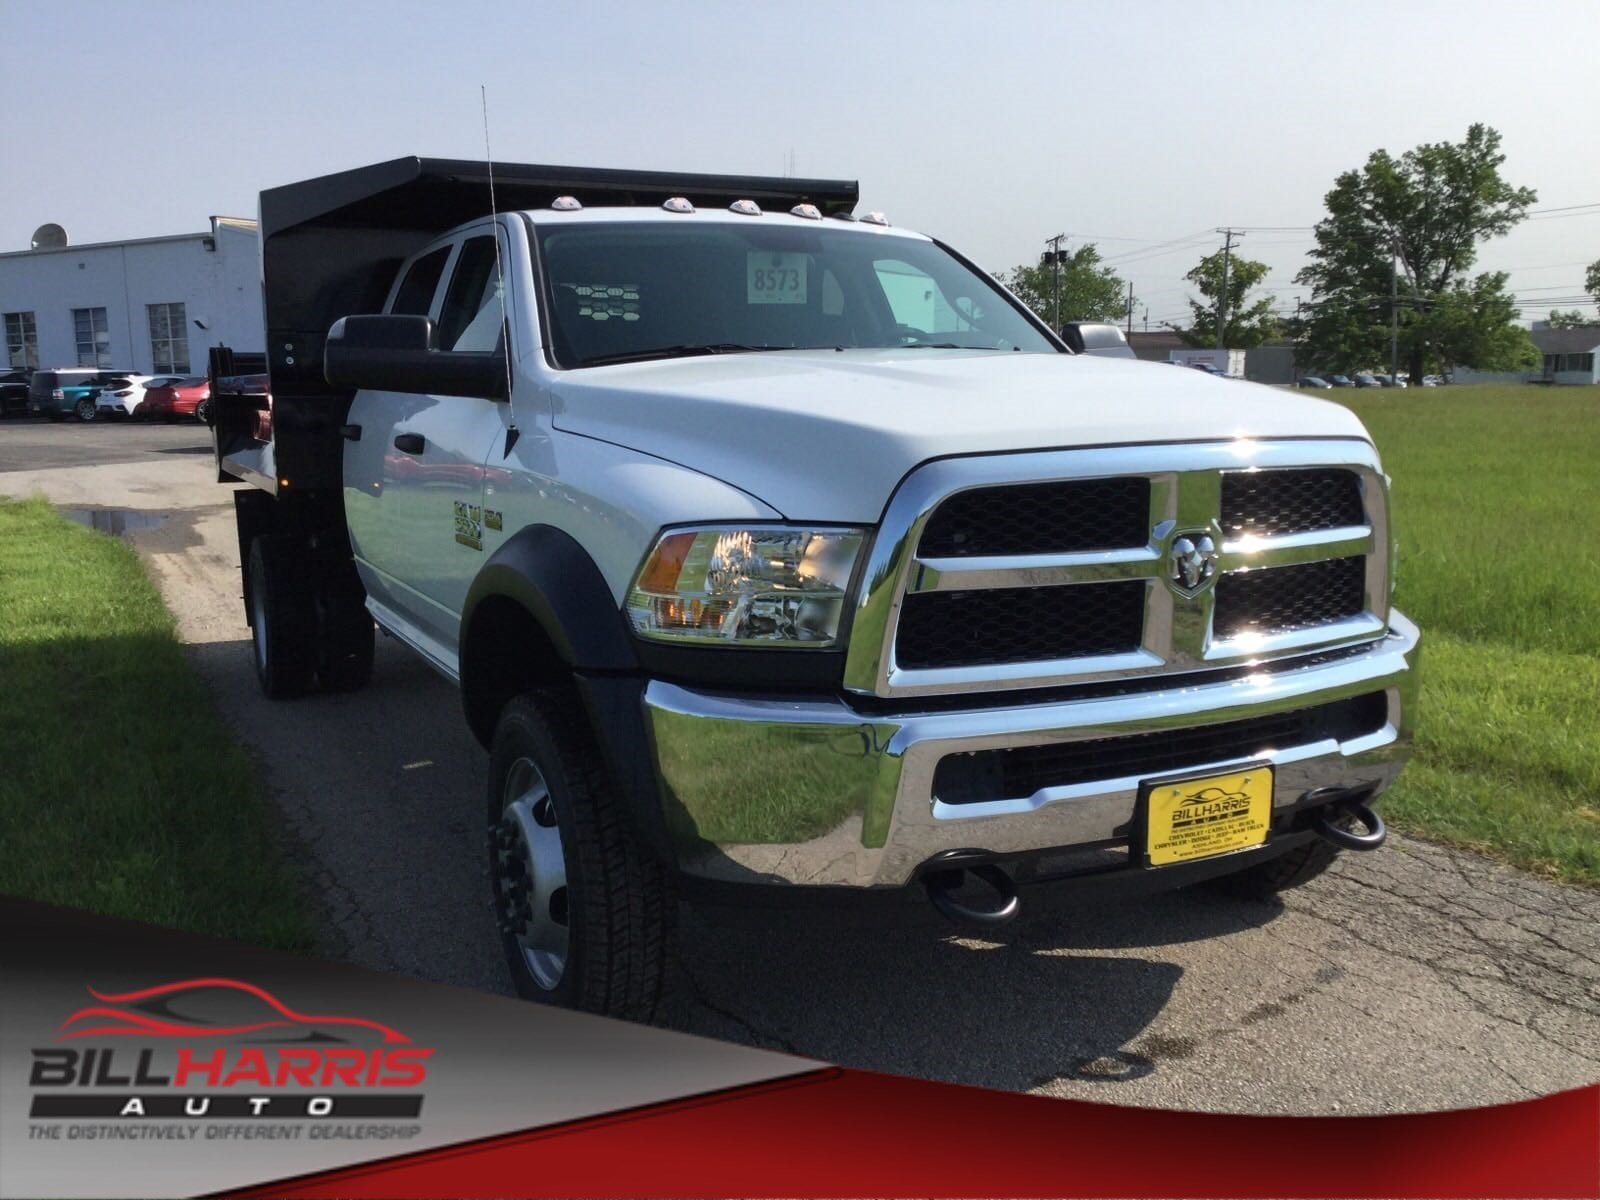 2018 Ram 5500 Chassis Cab 5500 TRADESMAN CHASSIS CREW CAB 4X4 173.4 WB Crew Cab